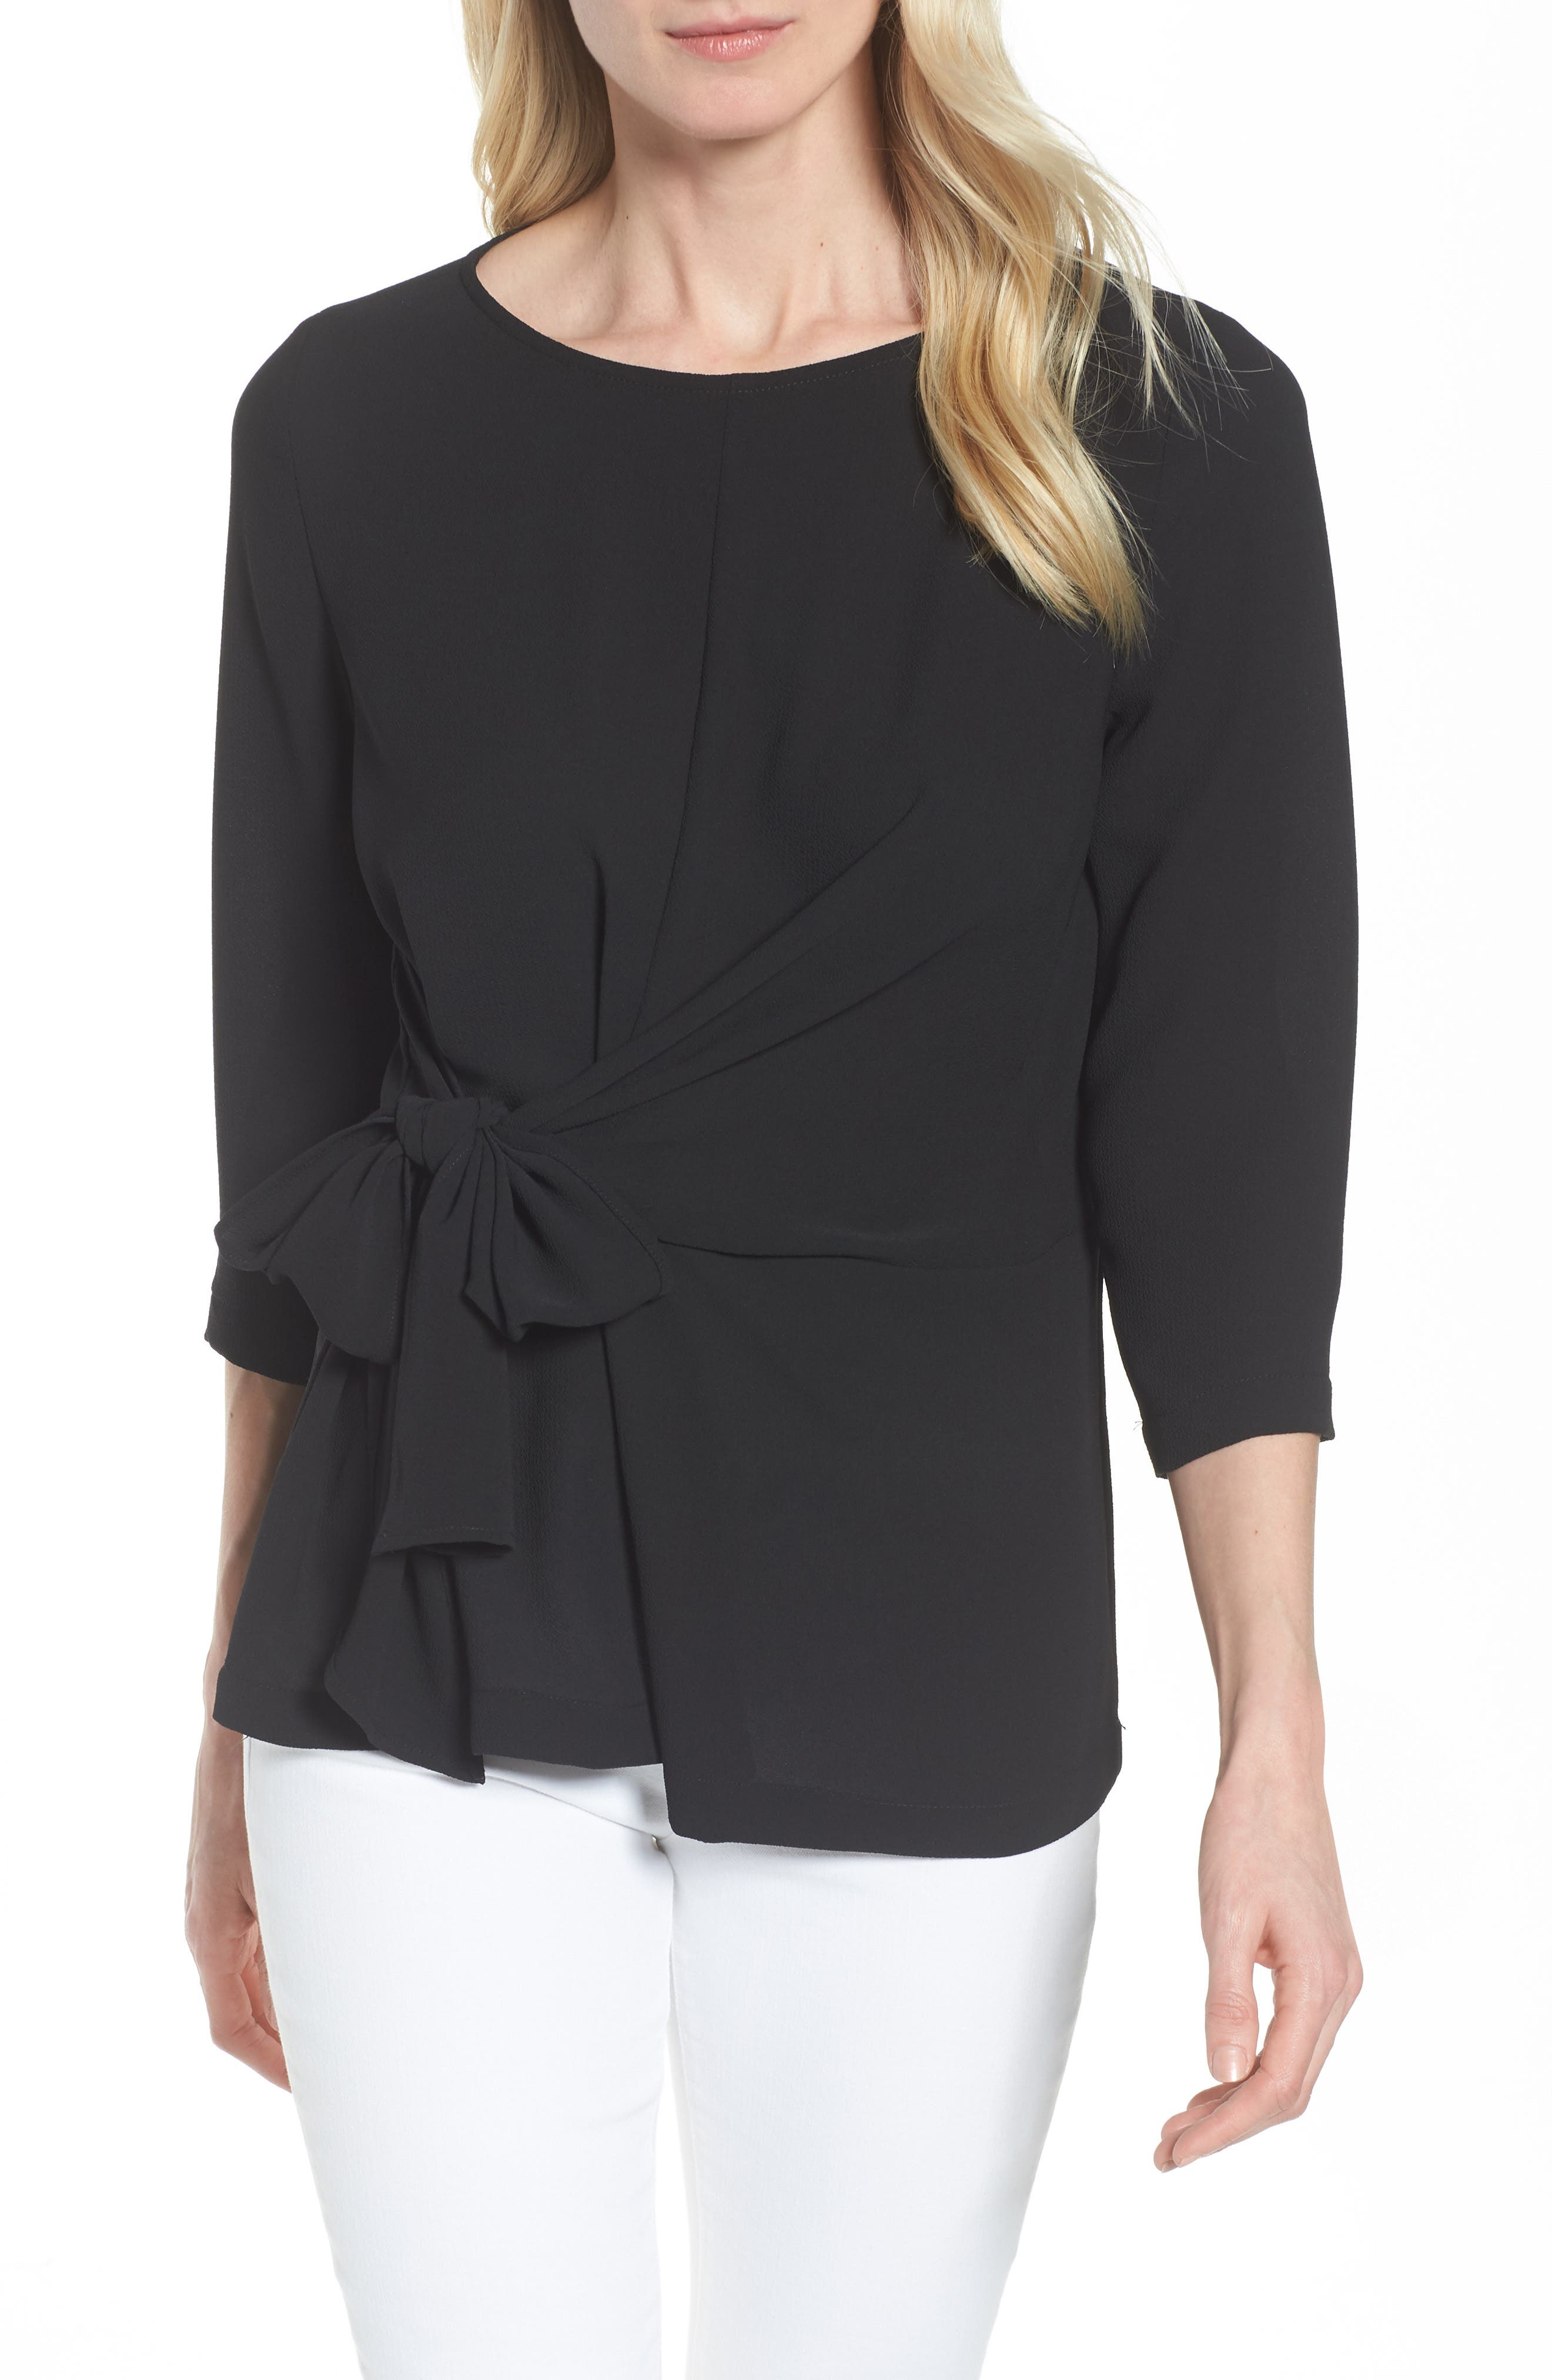 GIBSON,                             Tie Front Crepe Top,                             Main thumbnail 1, color,                             001